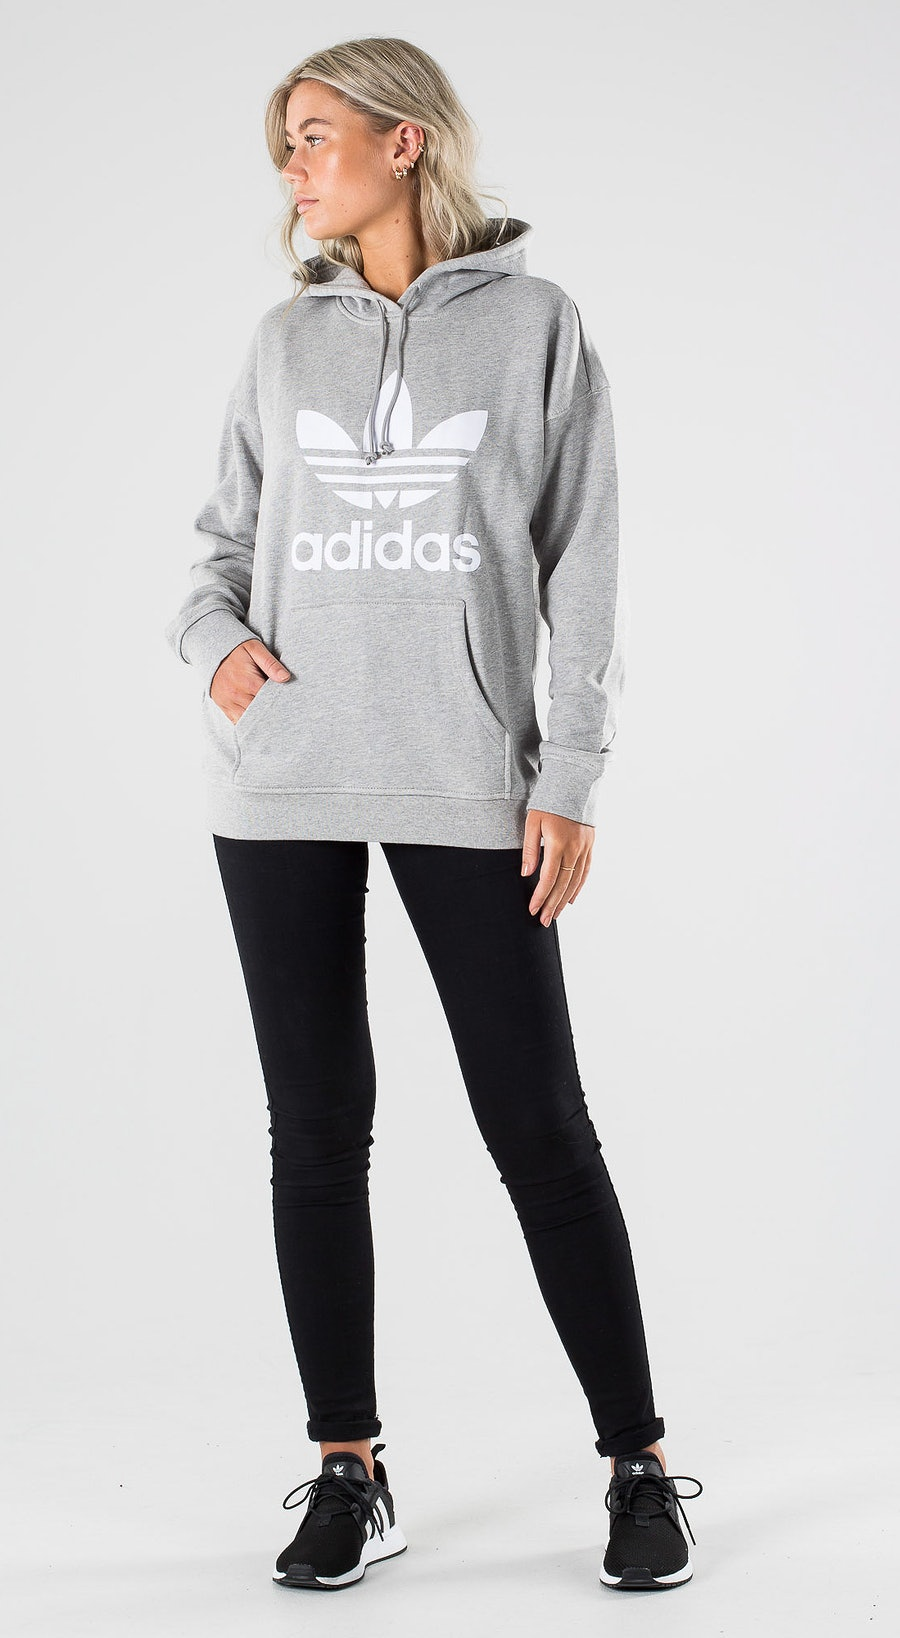 Adidas Originals Trefoil Hoodie Medium Grey Heather White Outfit Multi